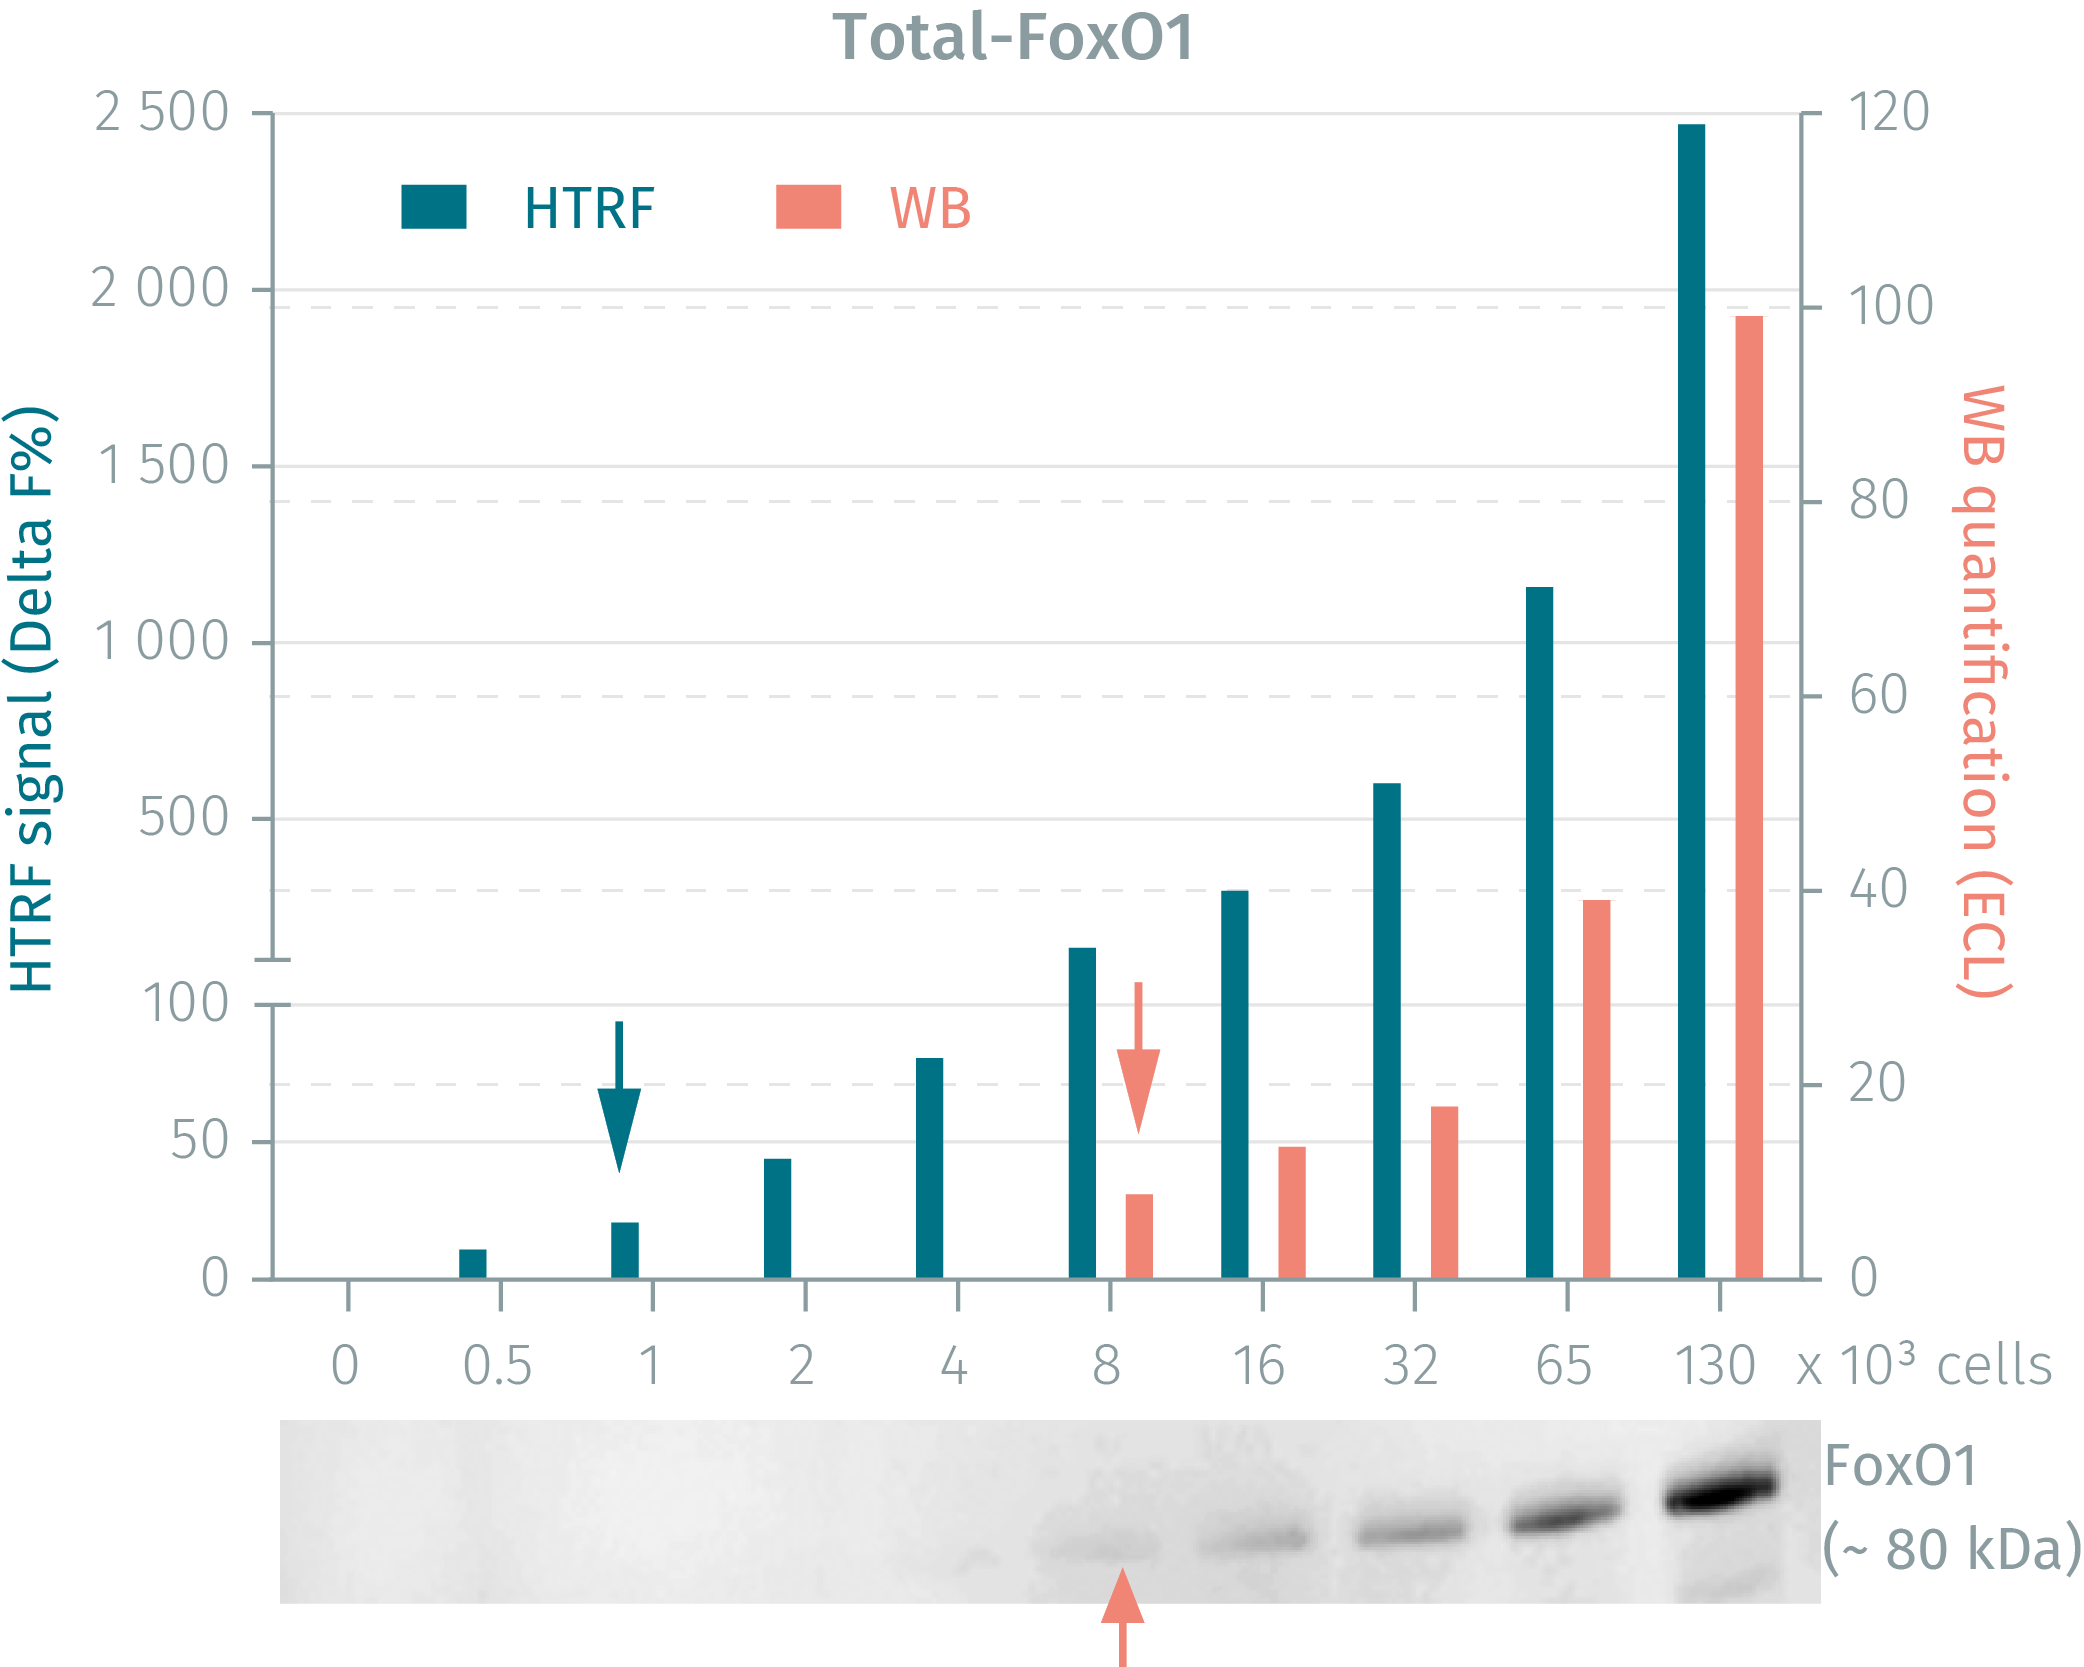 HTRF Total FoxO1 assay vs WB on human HEK293 cells